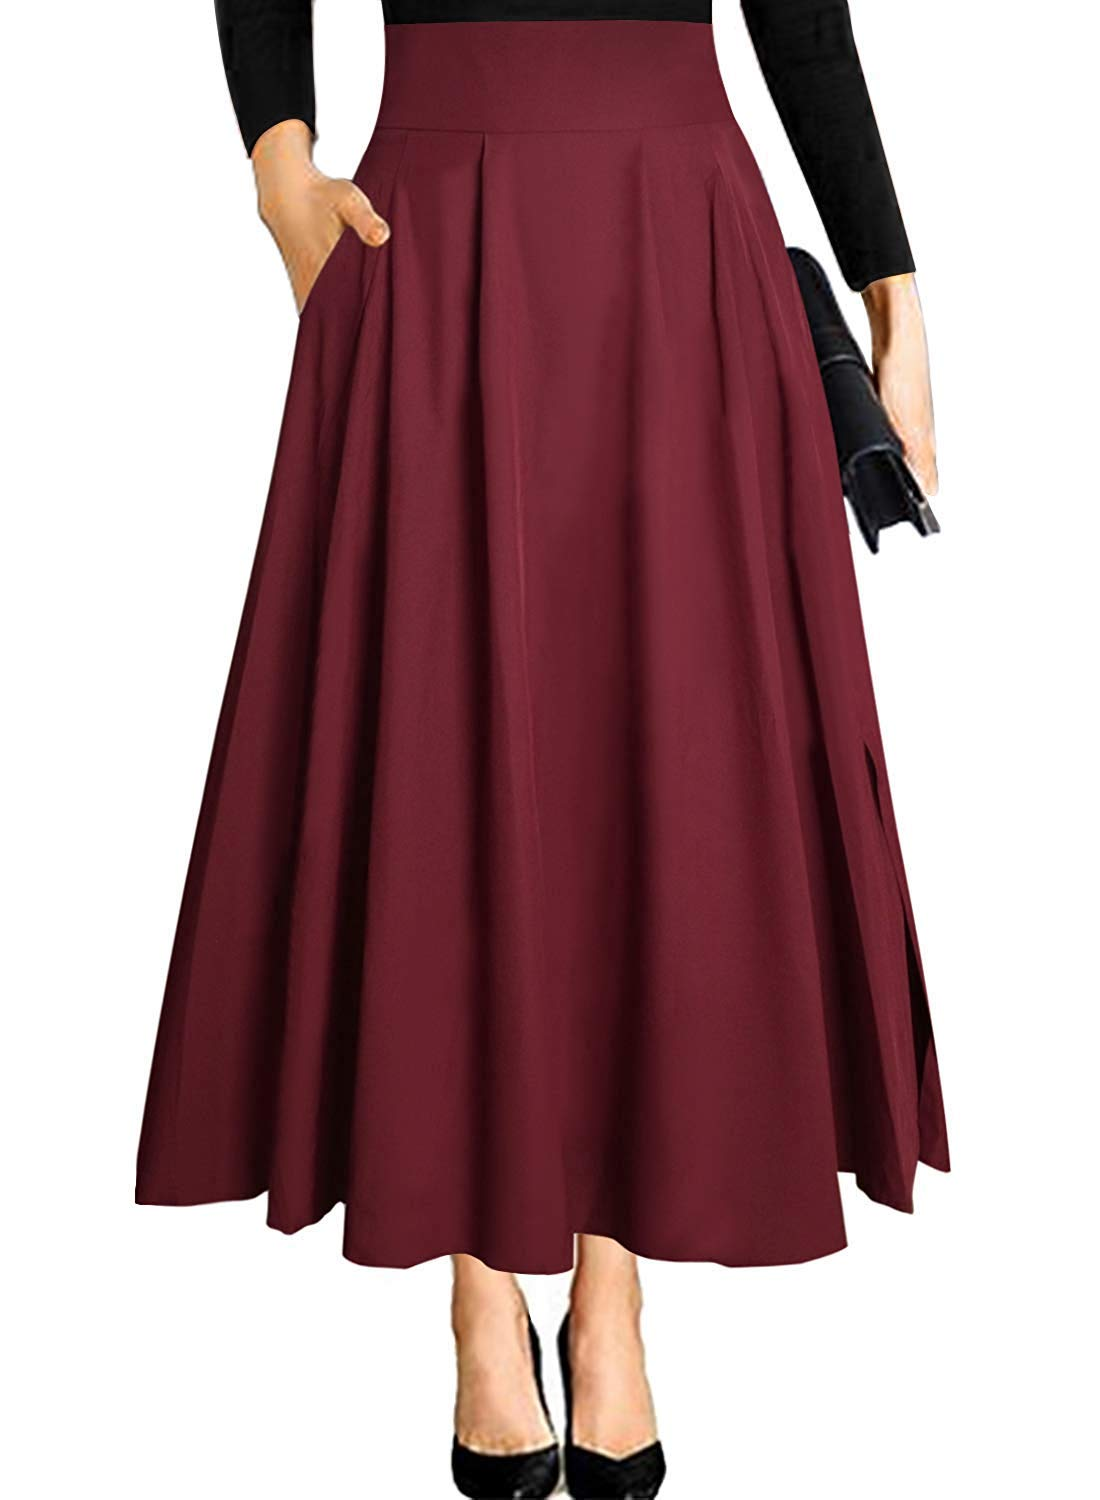 FIRENGOLI Sara Love Women's Casual Flowy Dress High Waist Pleated Midi Skirt with Pockets Red